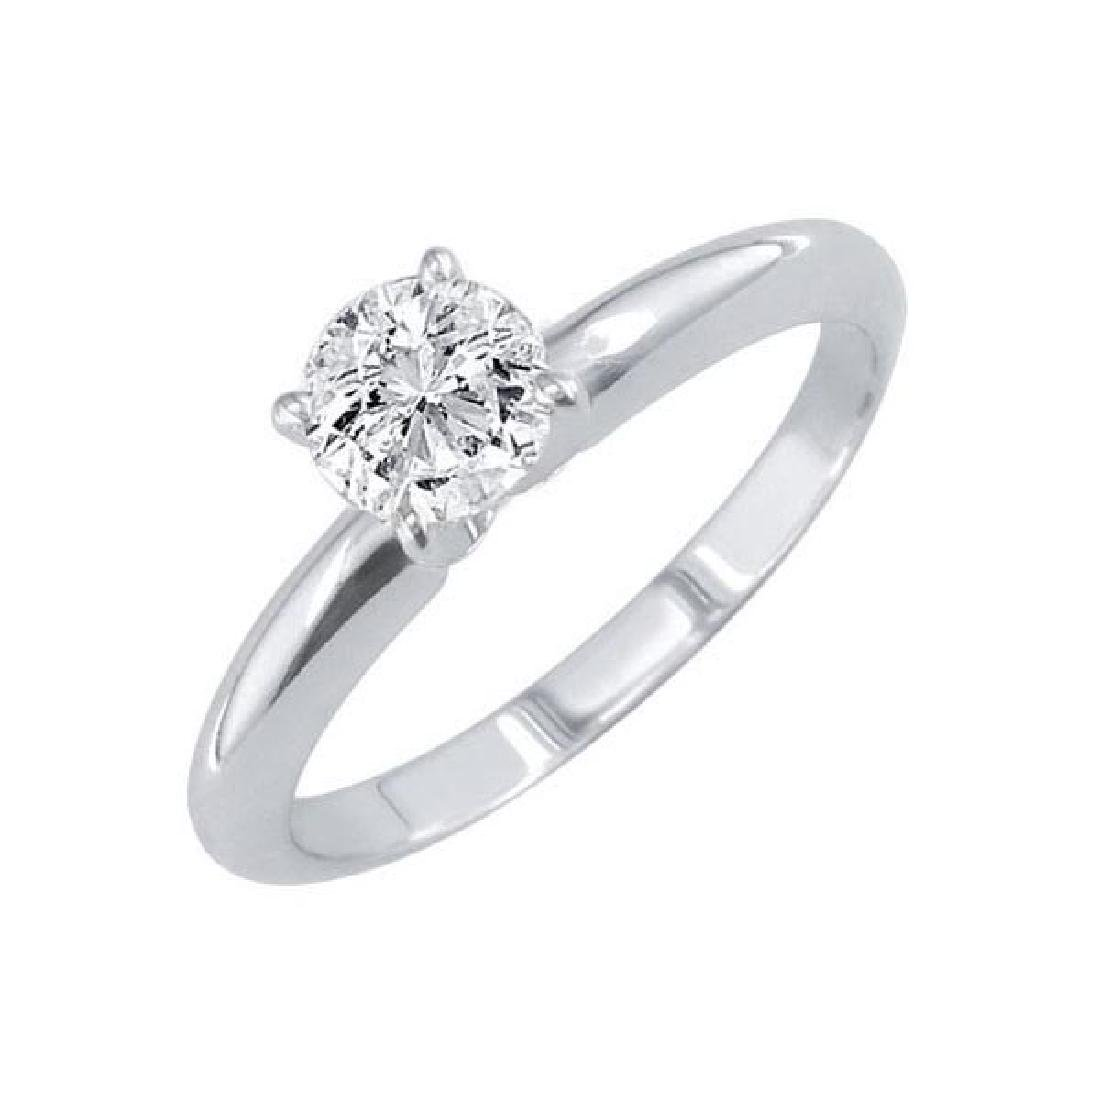 Certified 0.41 CTW Round Diamond Solitaire 14k Ring D/S